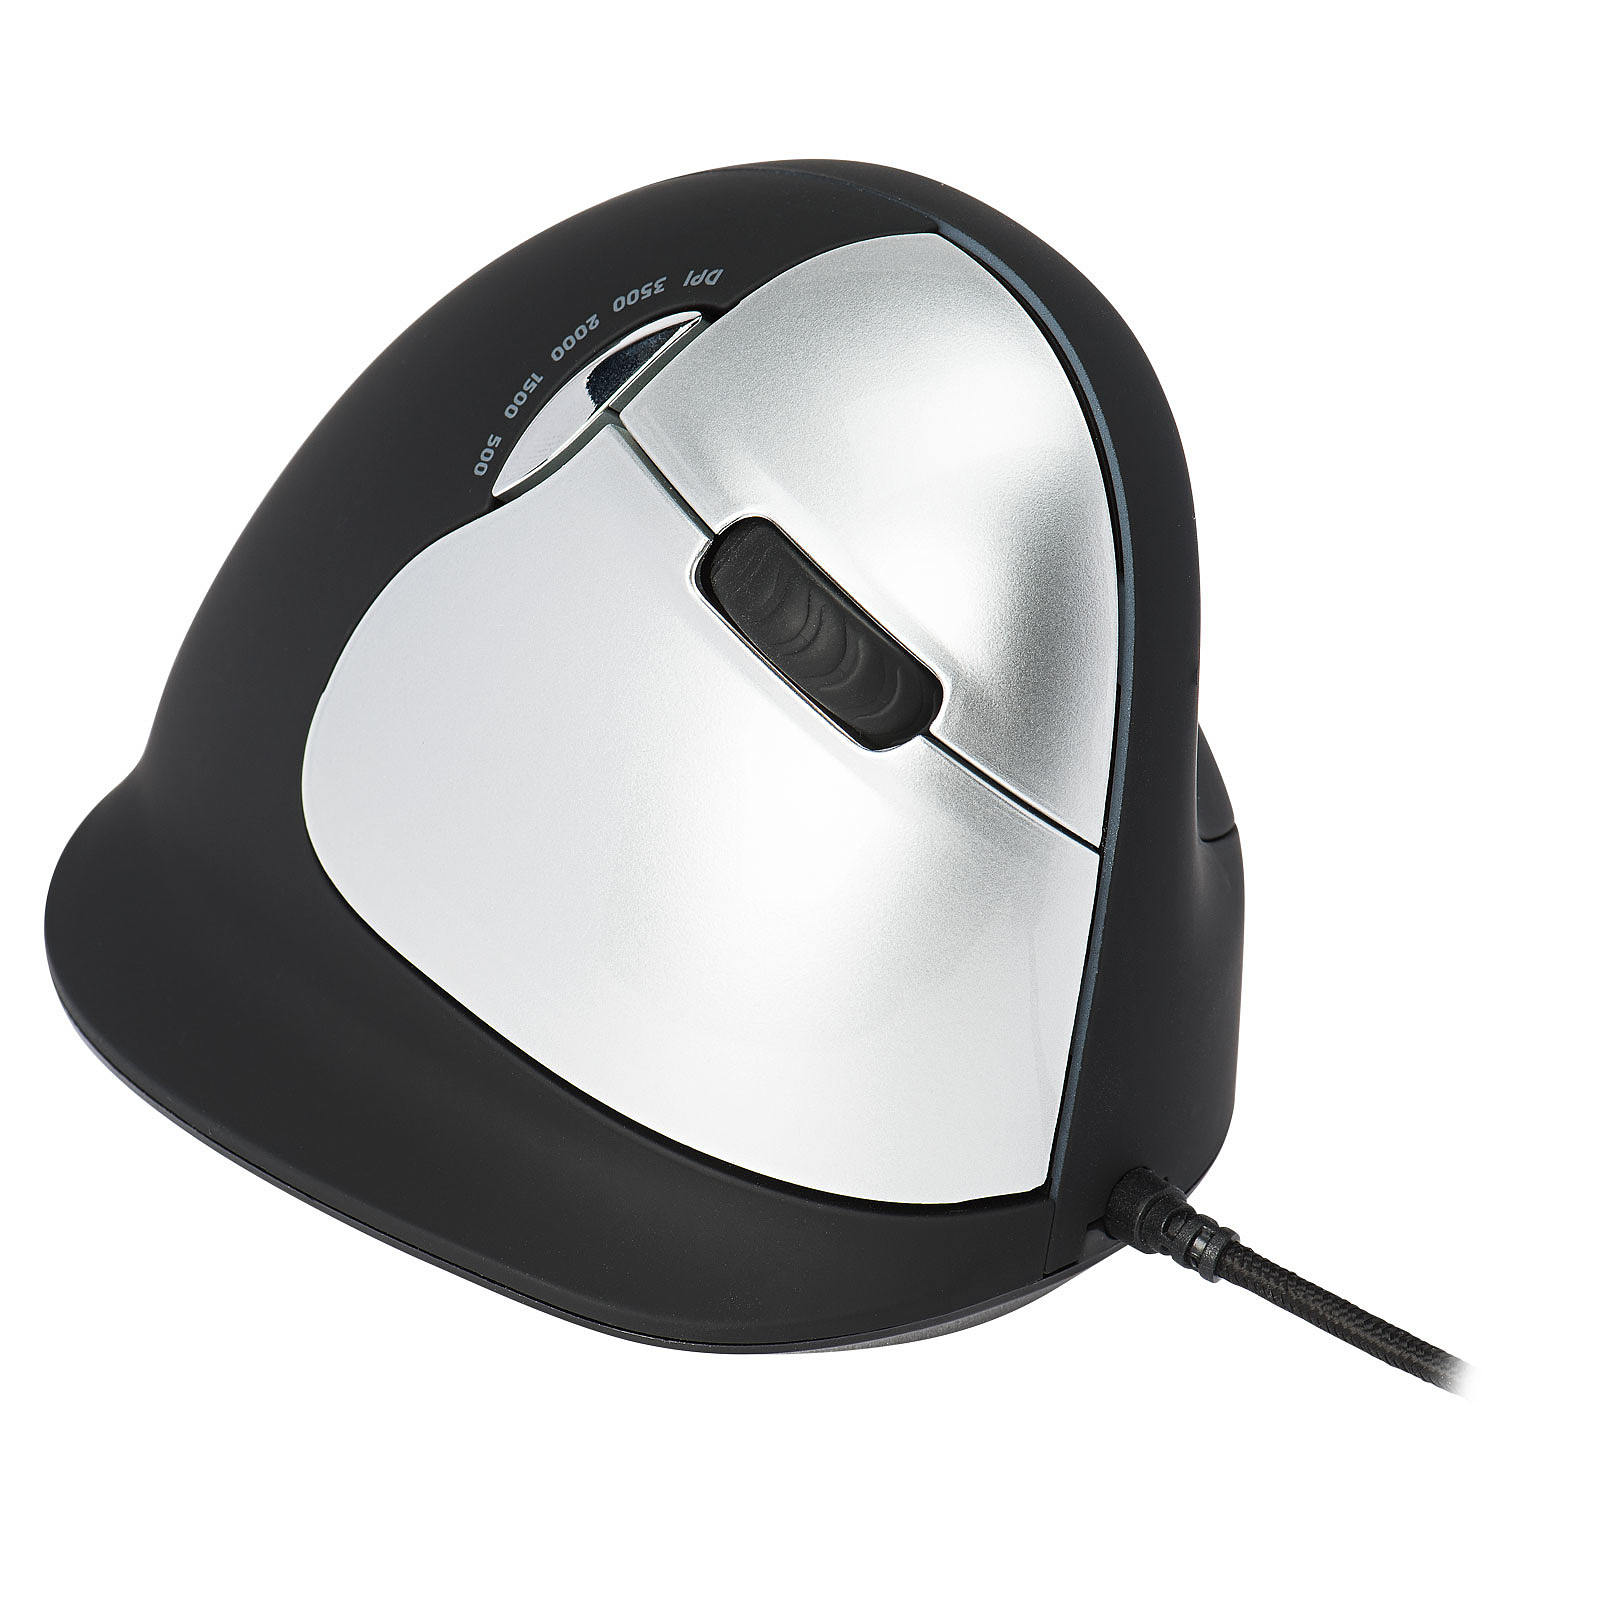 HE Wired Vertical Mouse Large (pour droitier)